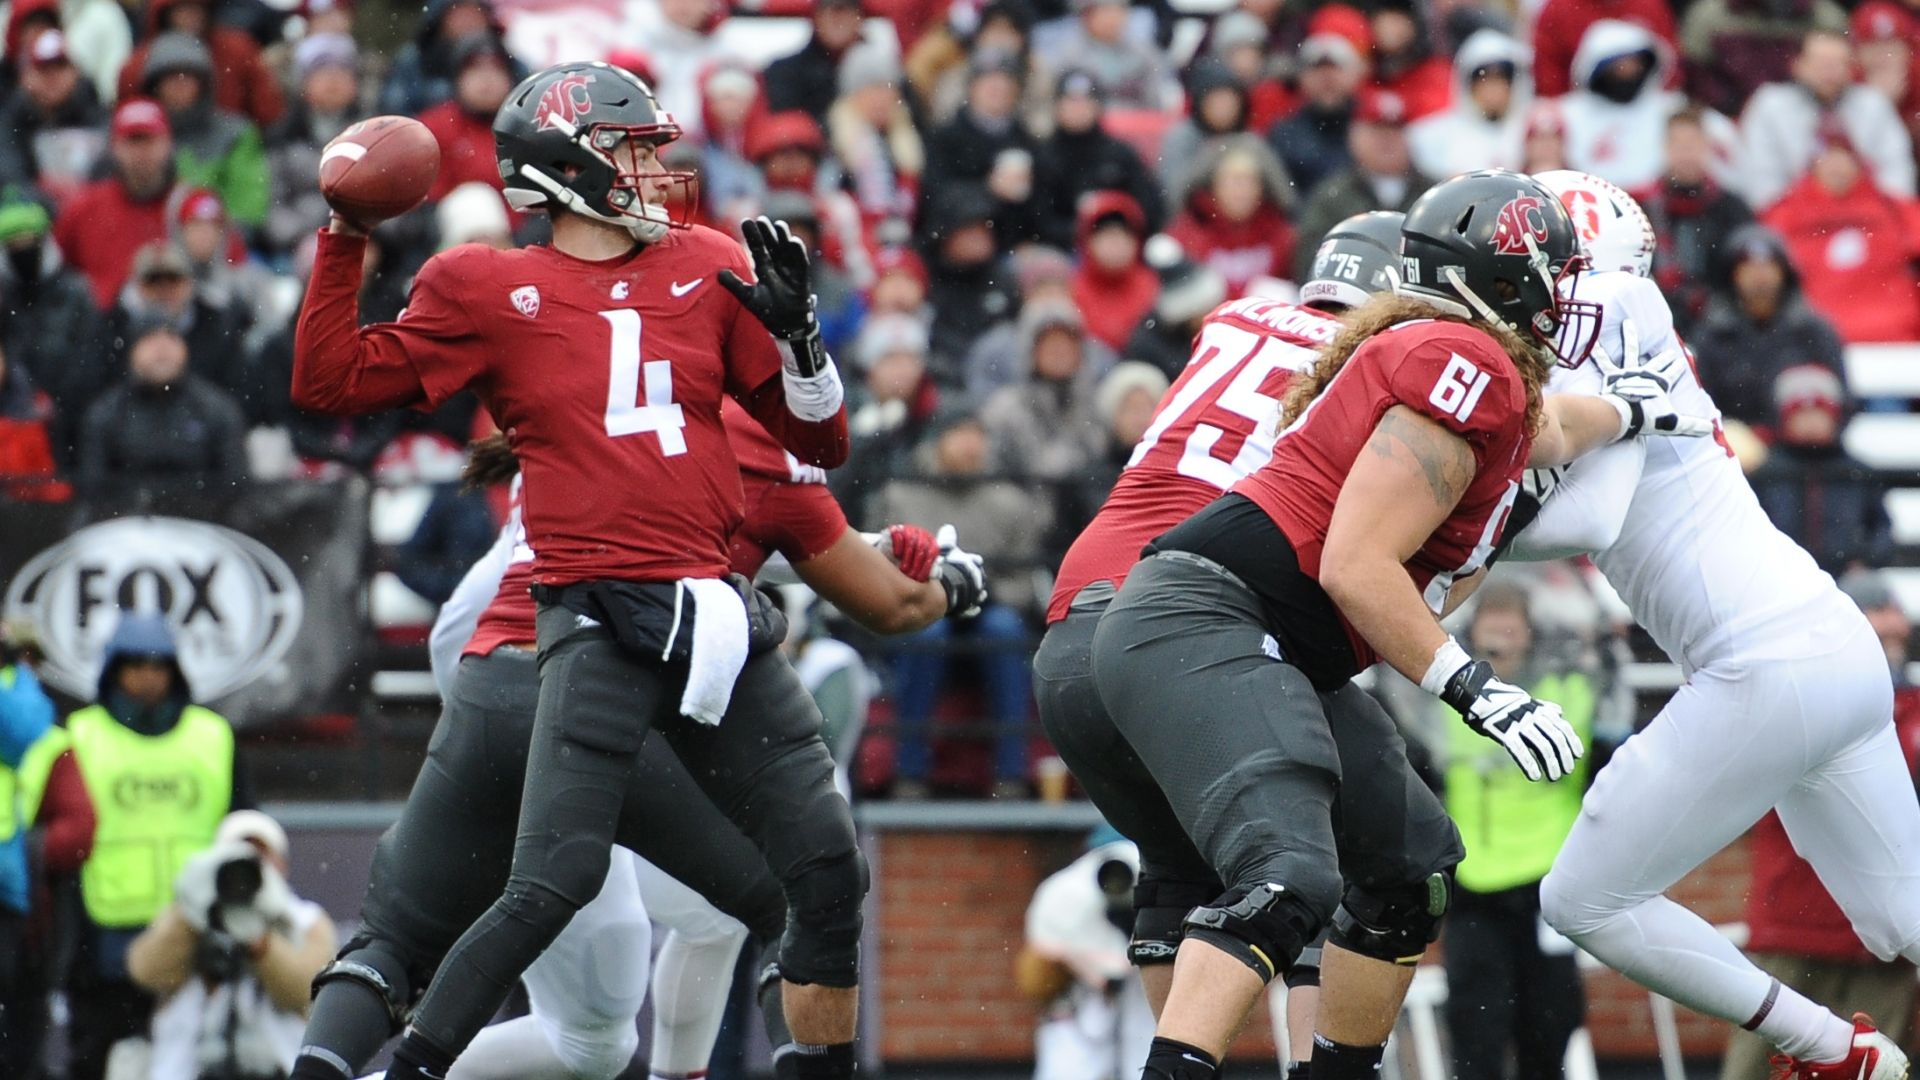 Falk leads Washington State past Stanford